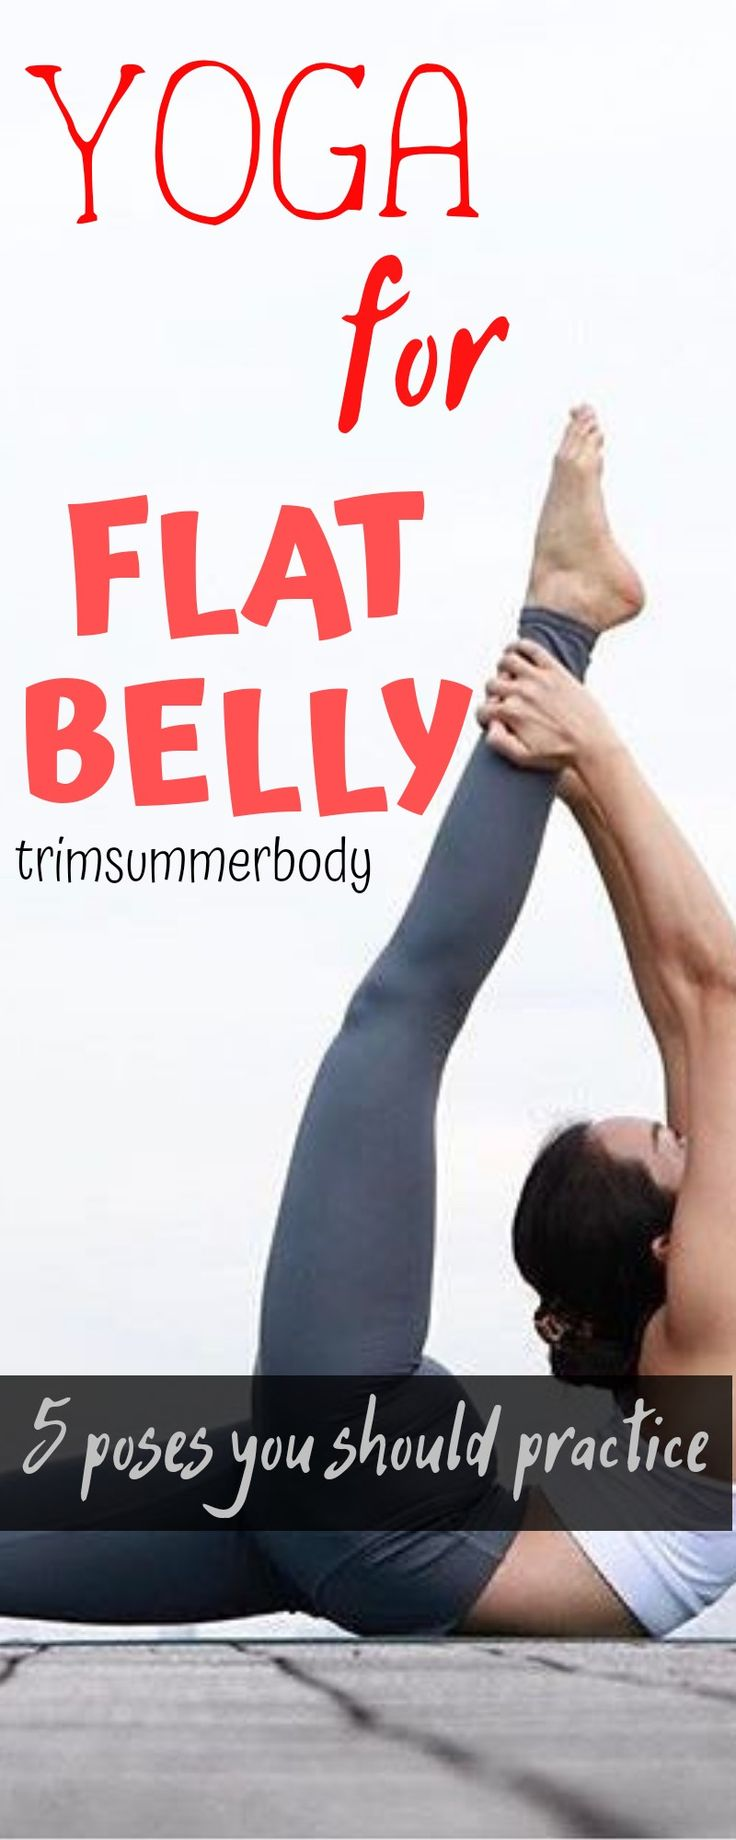 Yoga for flat abs - 5 poses that will make your belly flatter